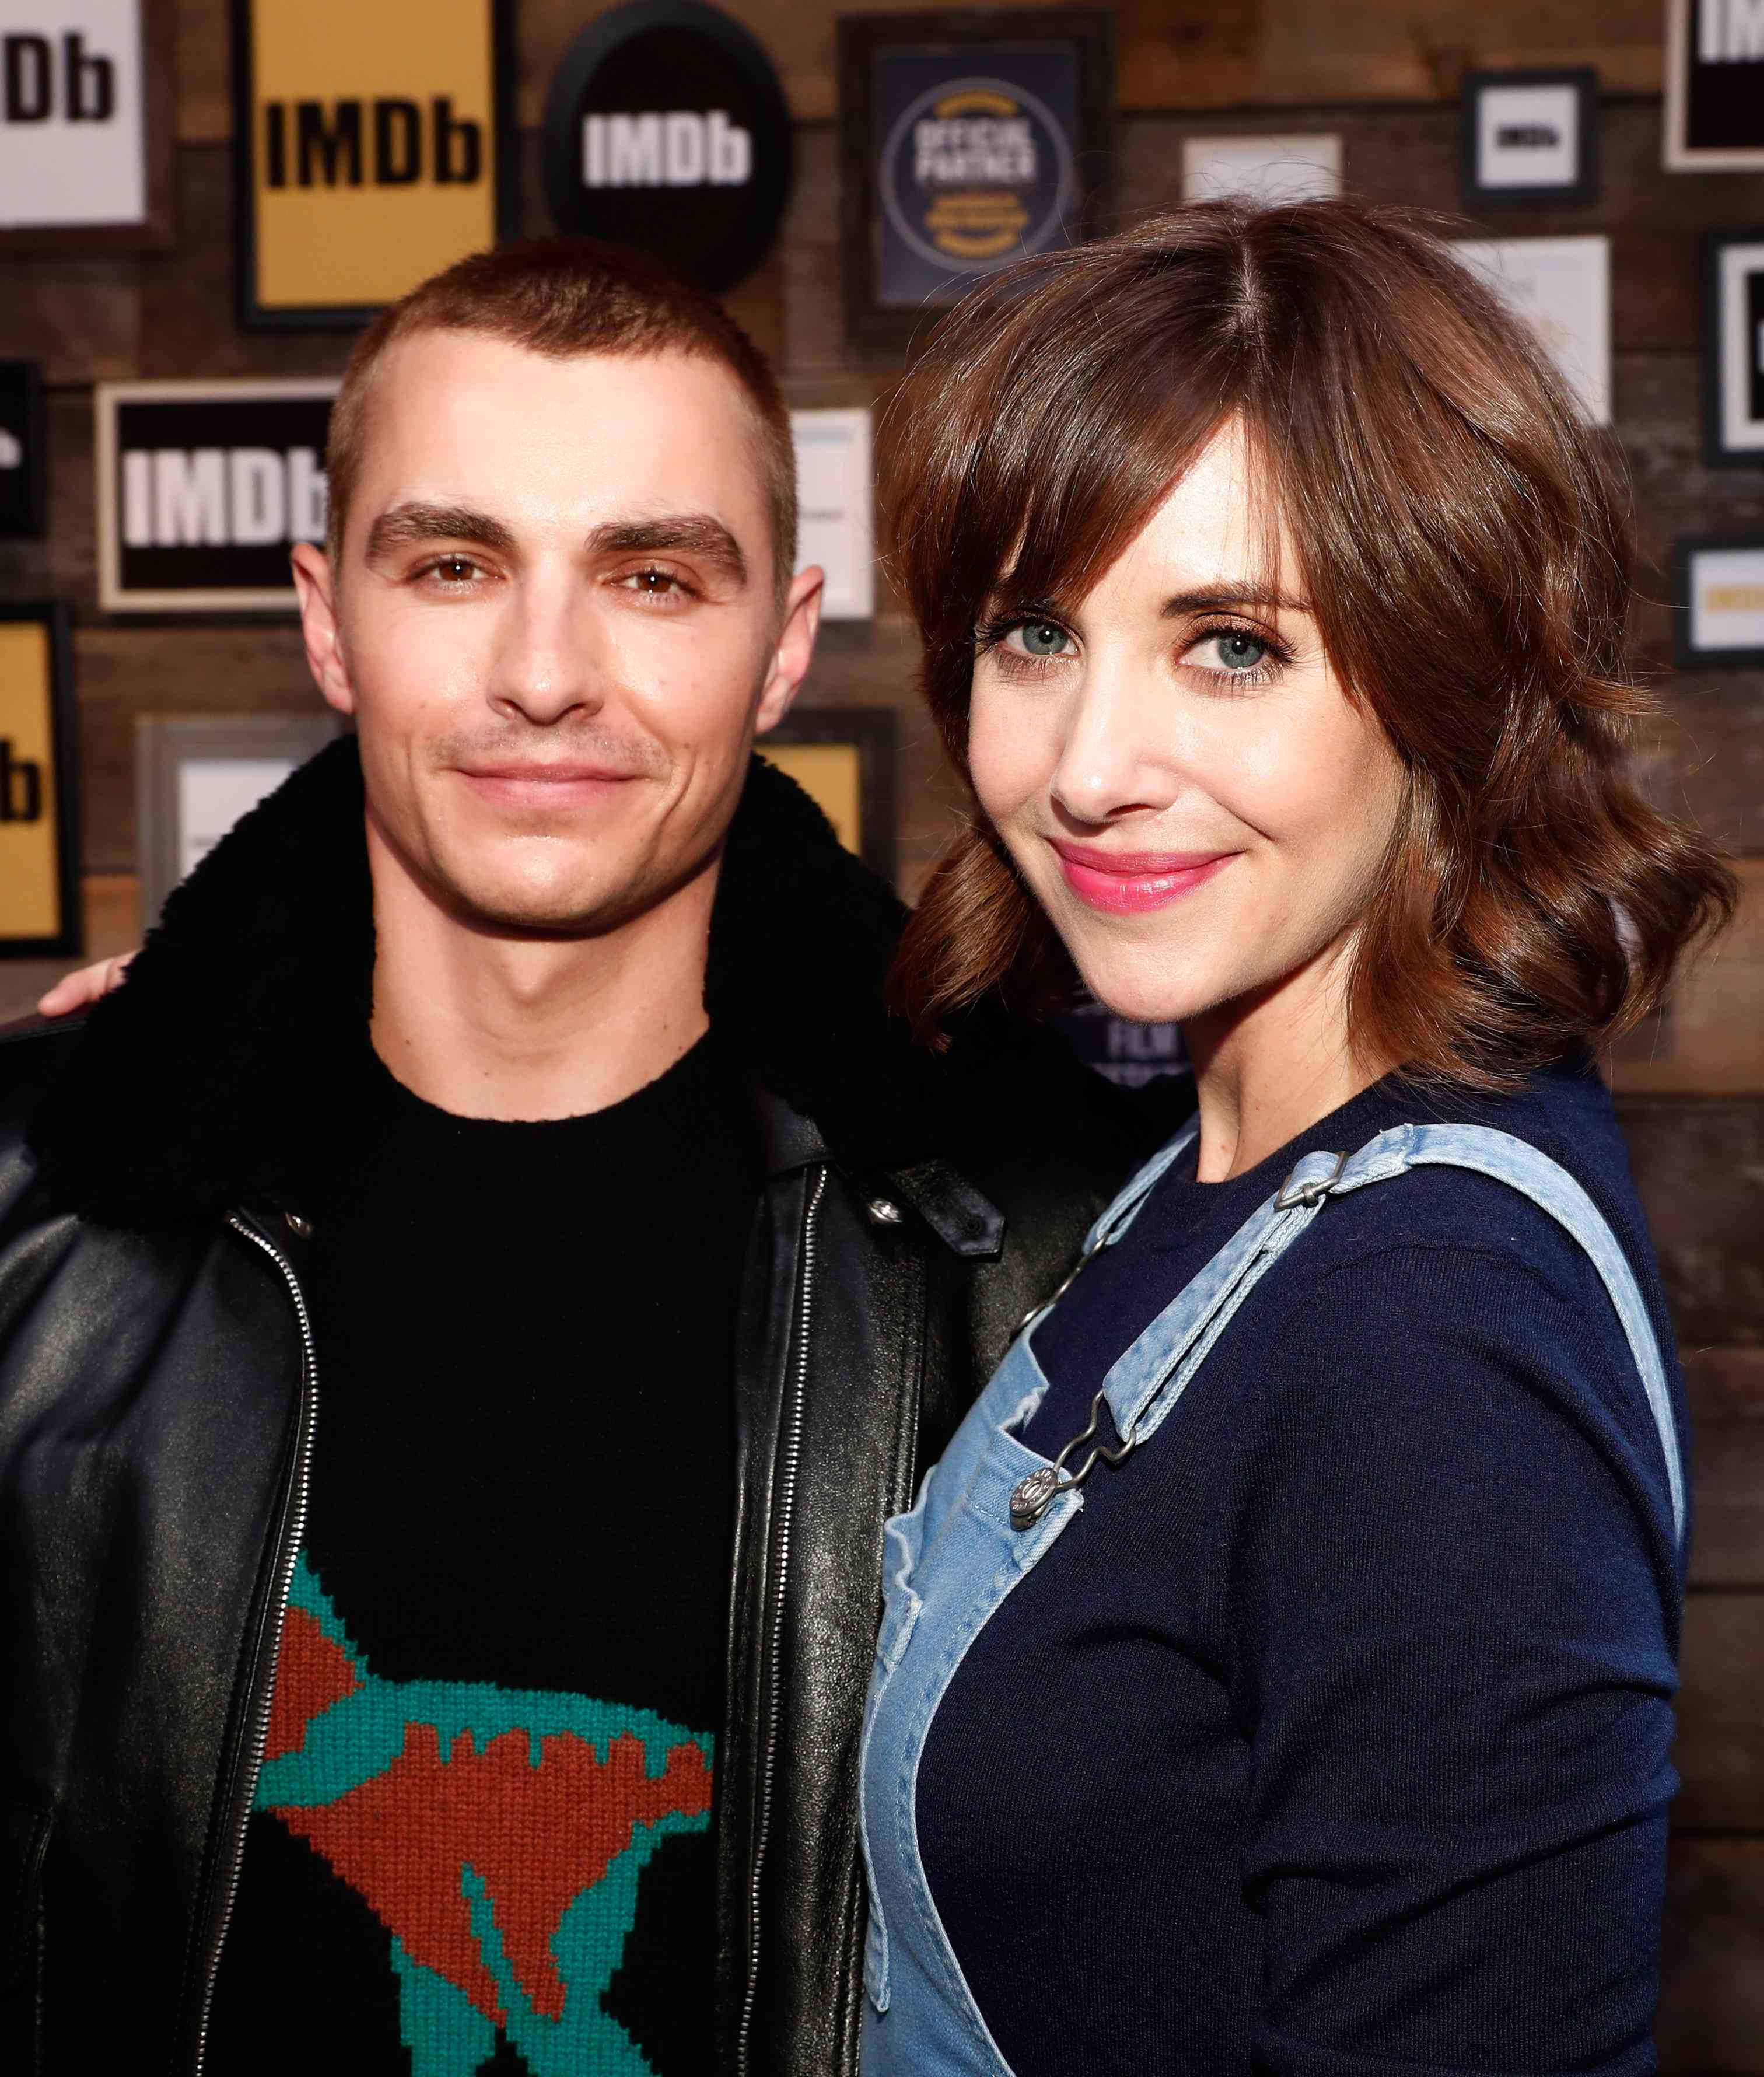 Alison Brie And Dave Franco Wedding.Dave Franco Finally Opens Up About His Wedding To Alison Brie